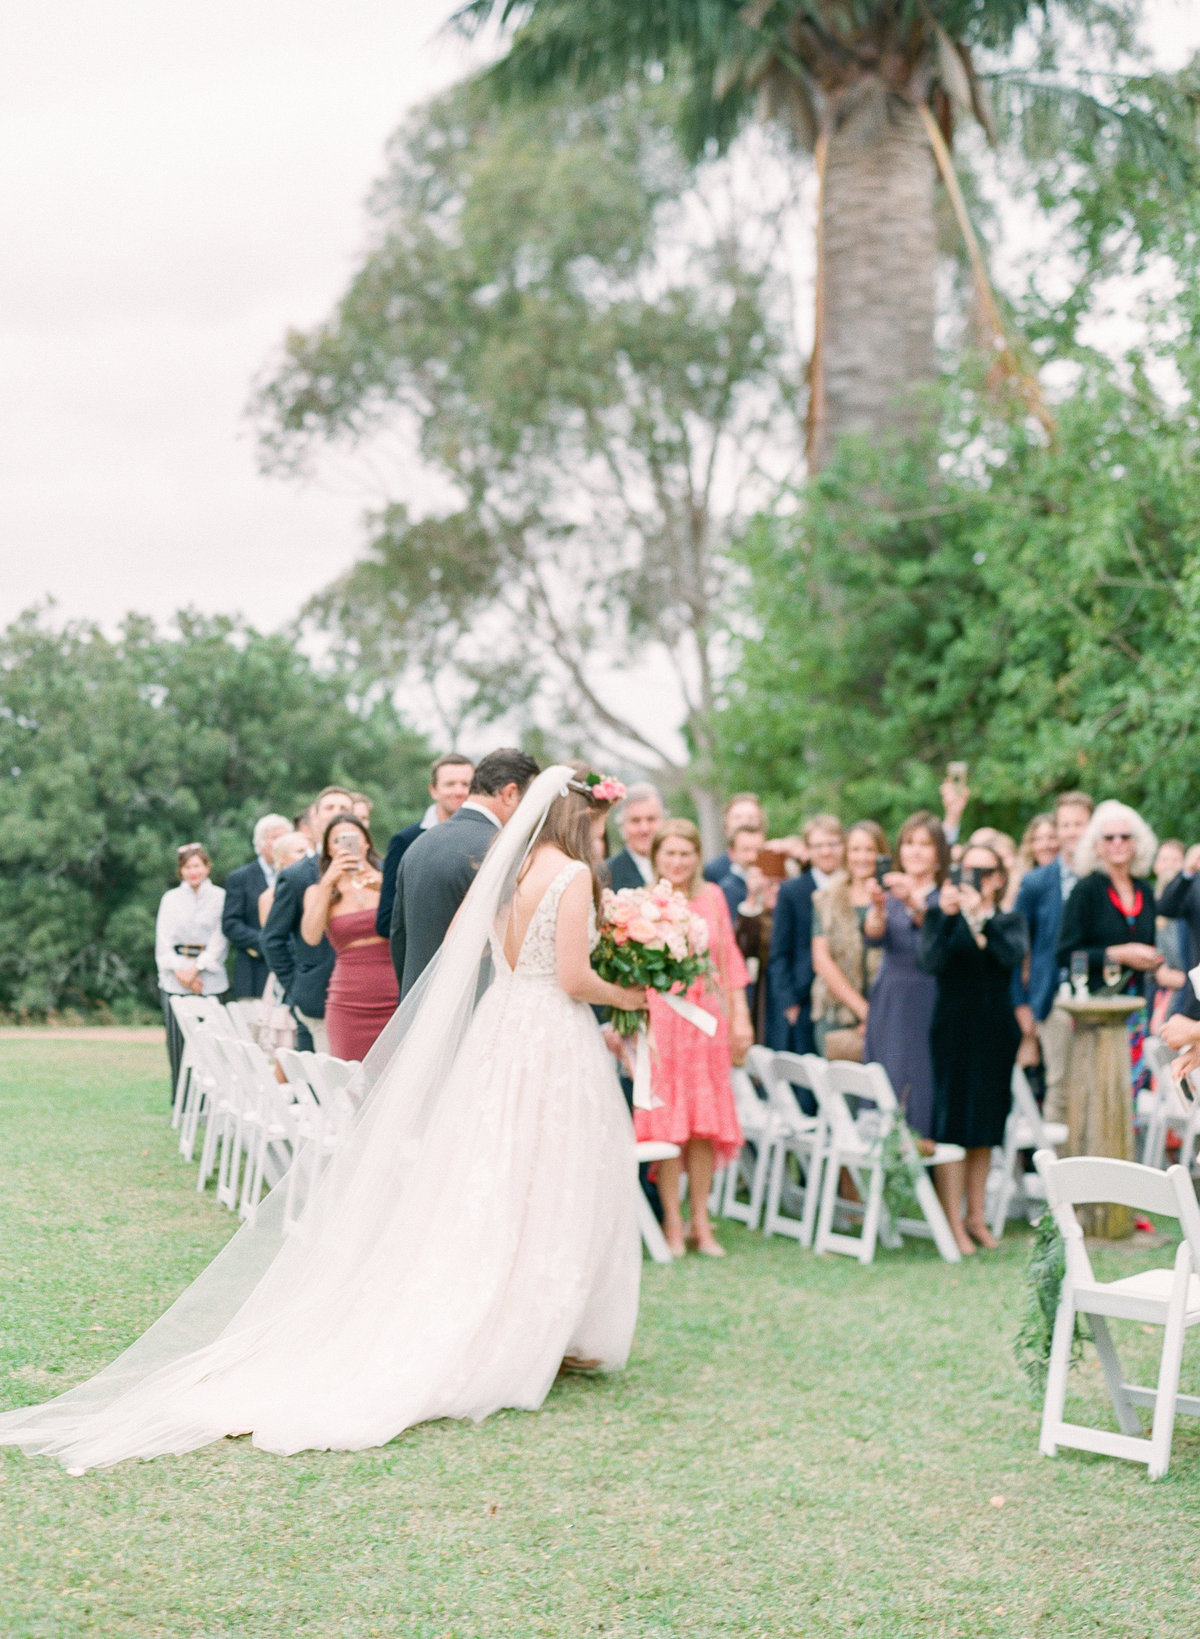 dreamy fine art wedding australia camden will capen 0044